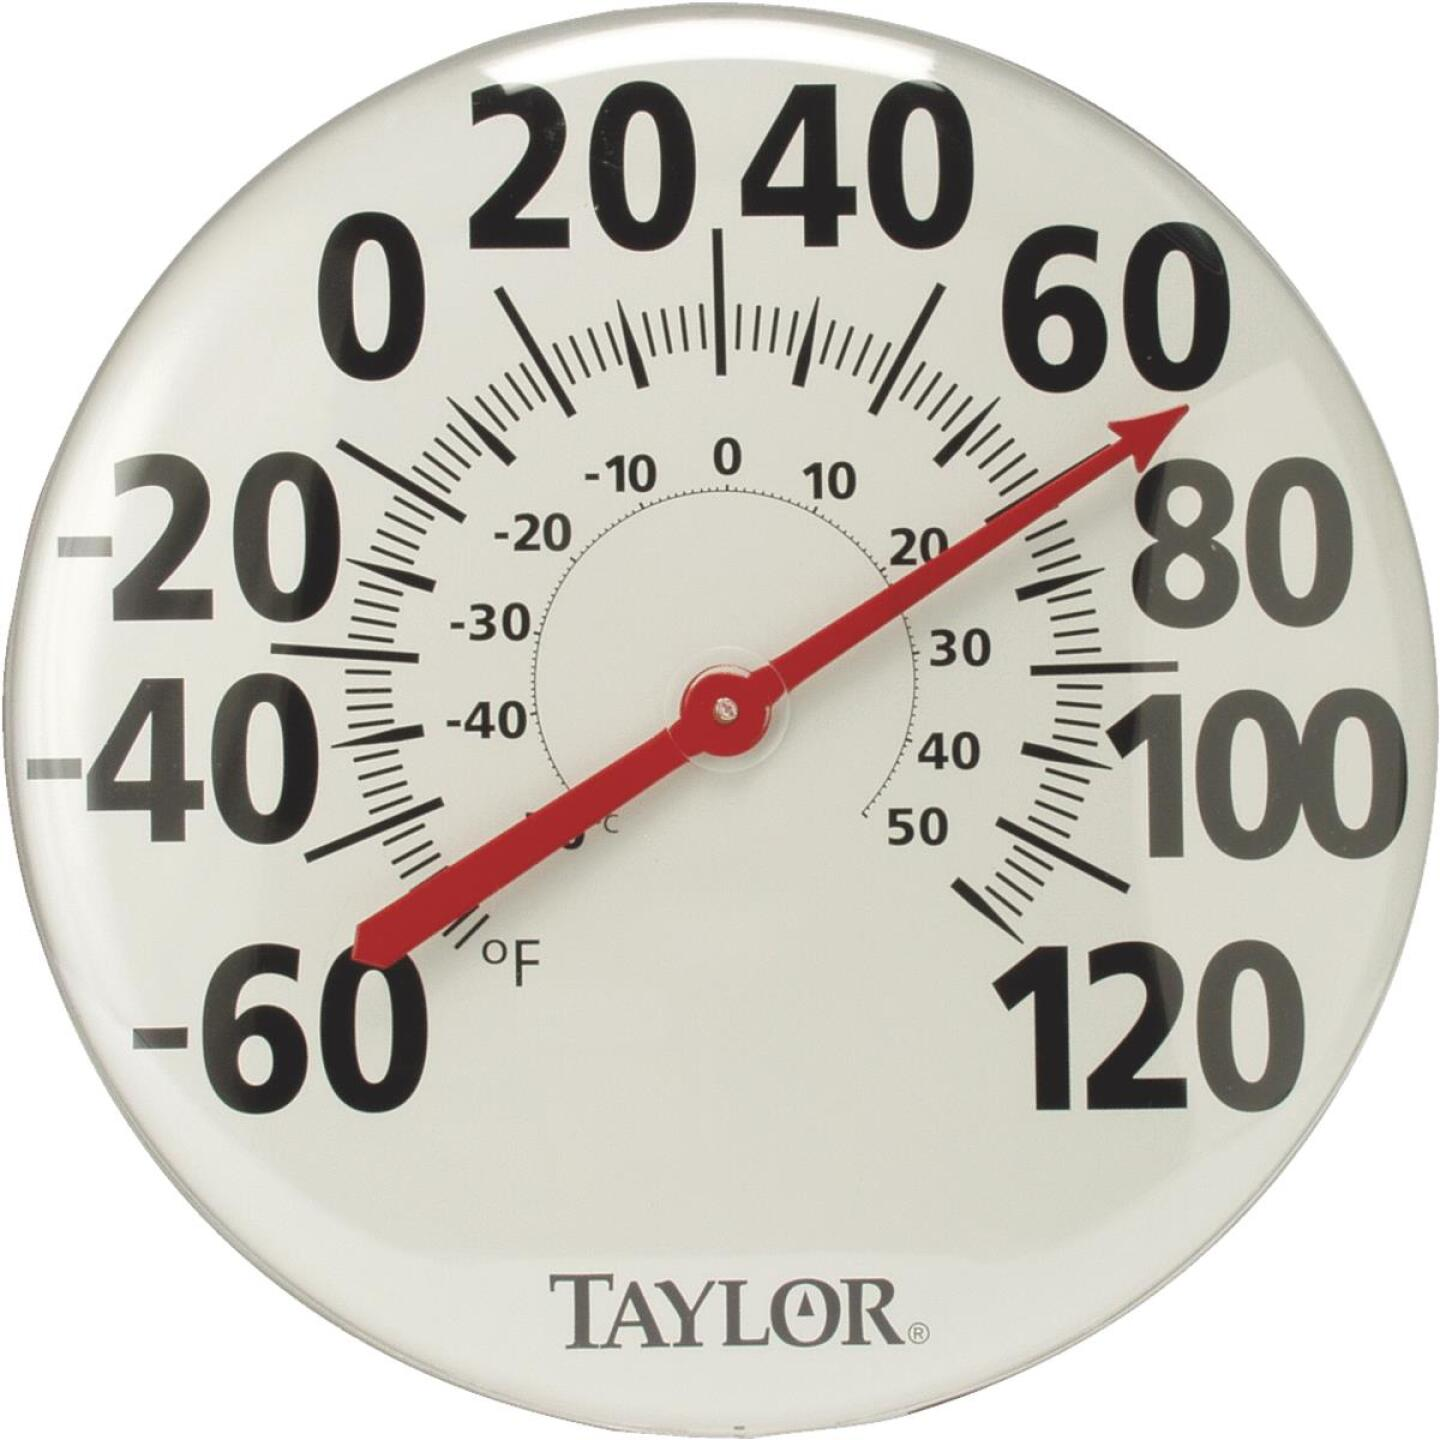 "Taylor 18"" Fahrenheit and Celsius -60 To 120 F, -50 To 50 C Outdoor Wall Thermometer Image 1"